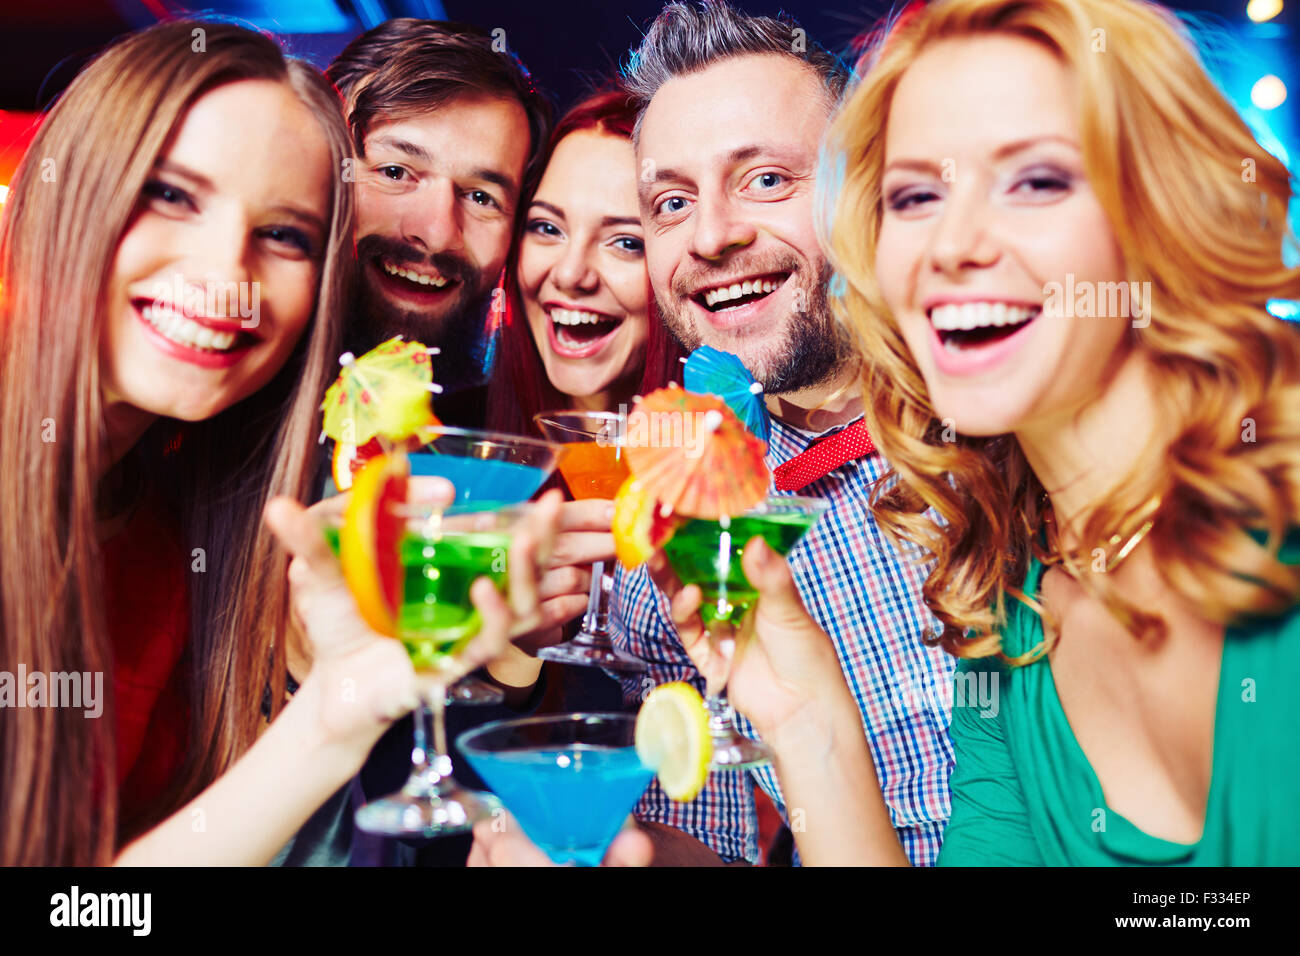 Les jeunes extatique avec des cocktails at party Photo Stock